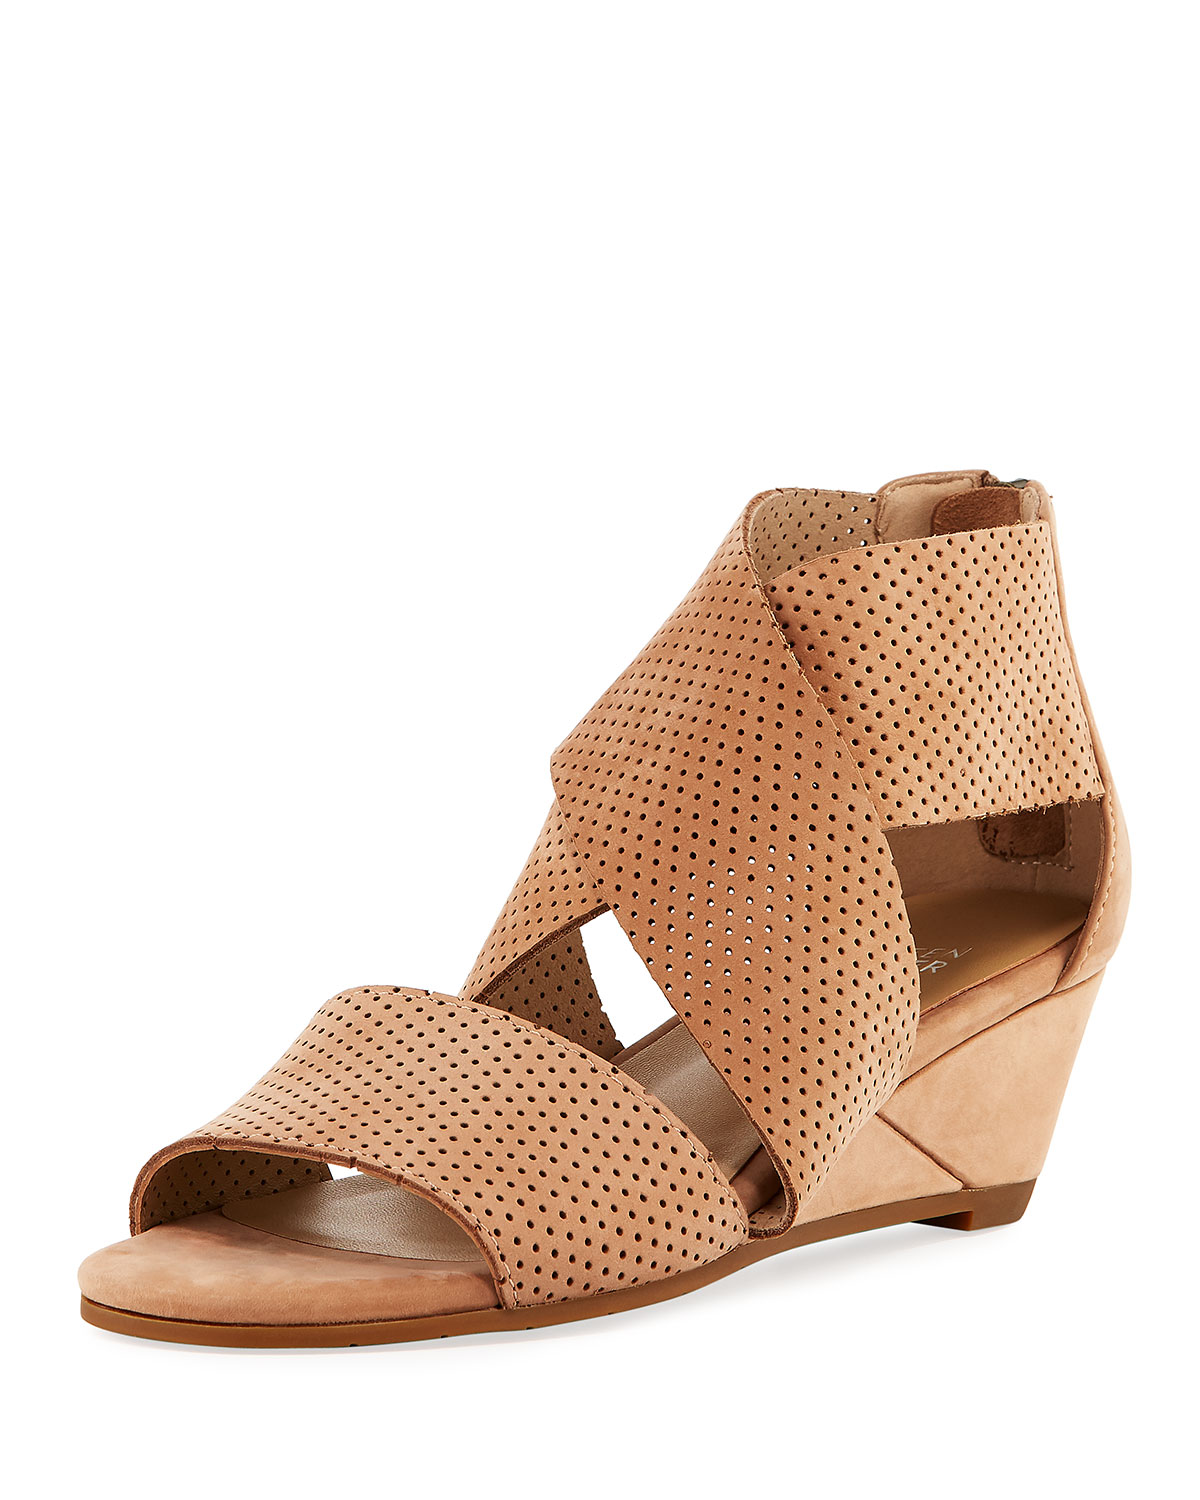 Kes2 Perforated Wedge Sandals ylSNXN